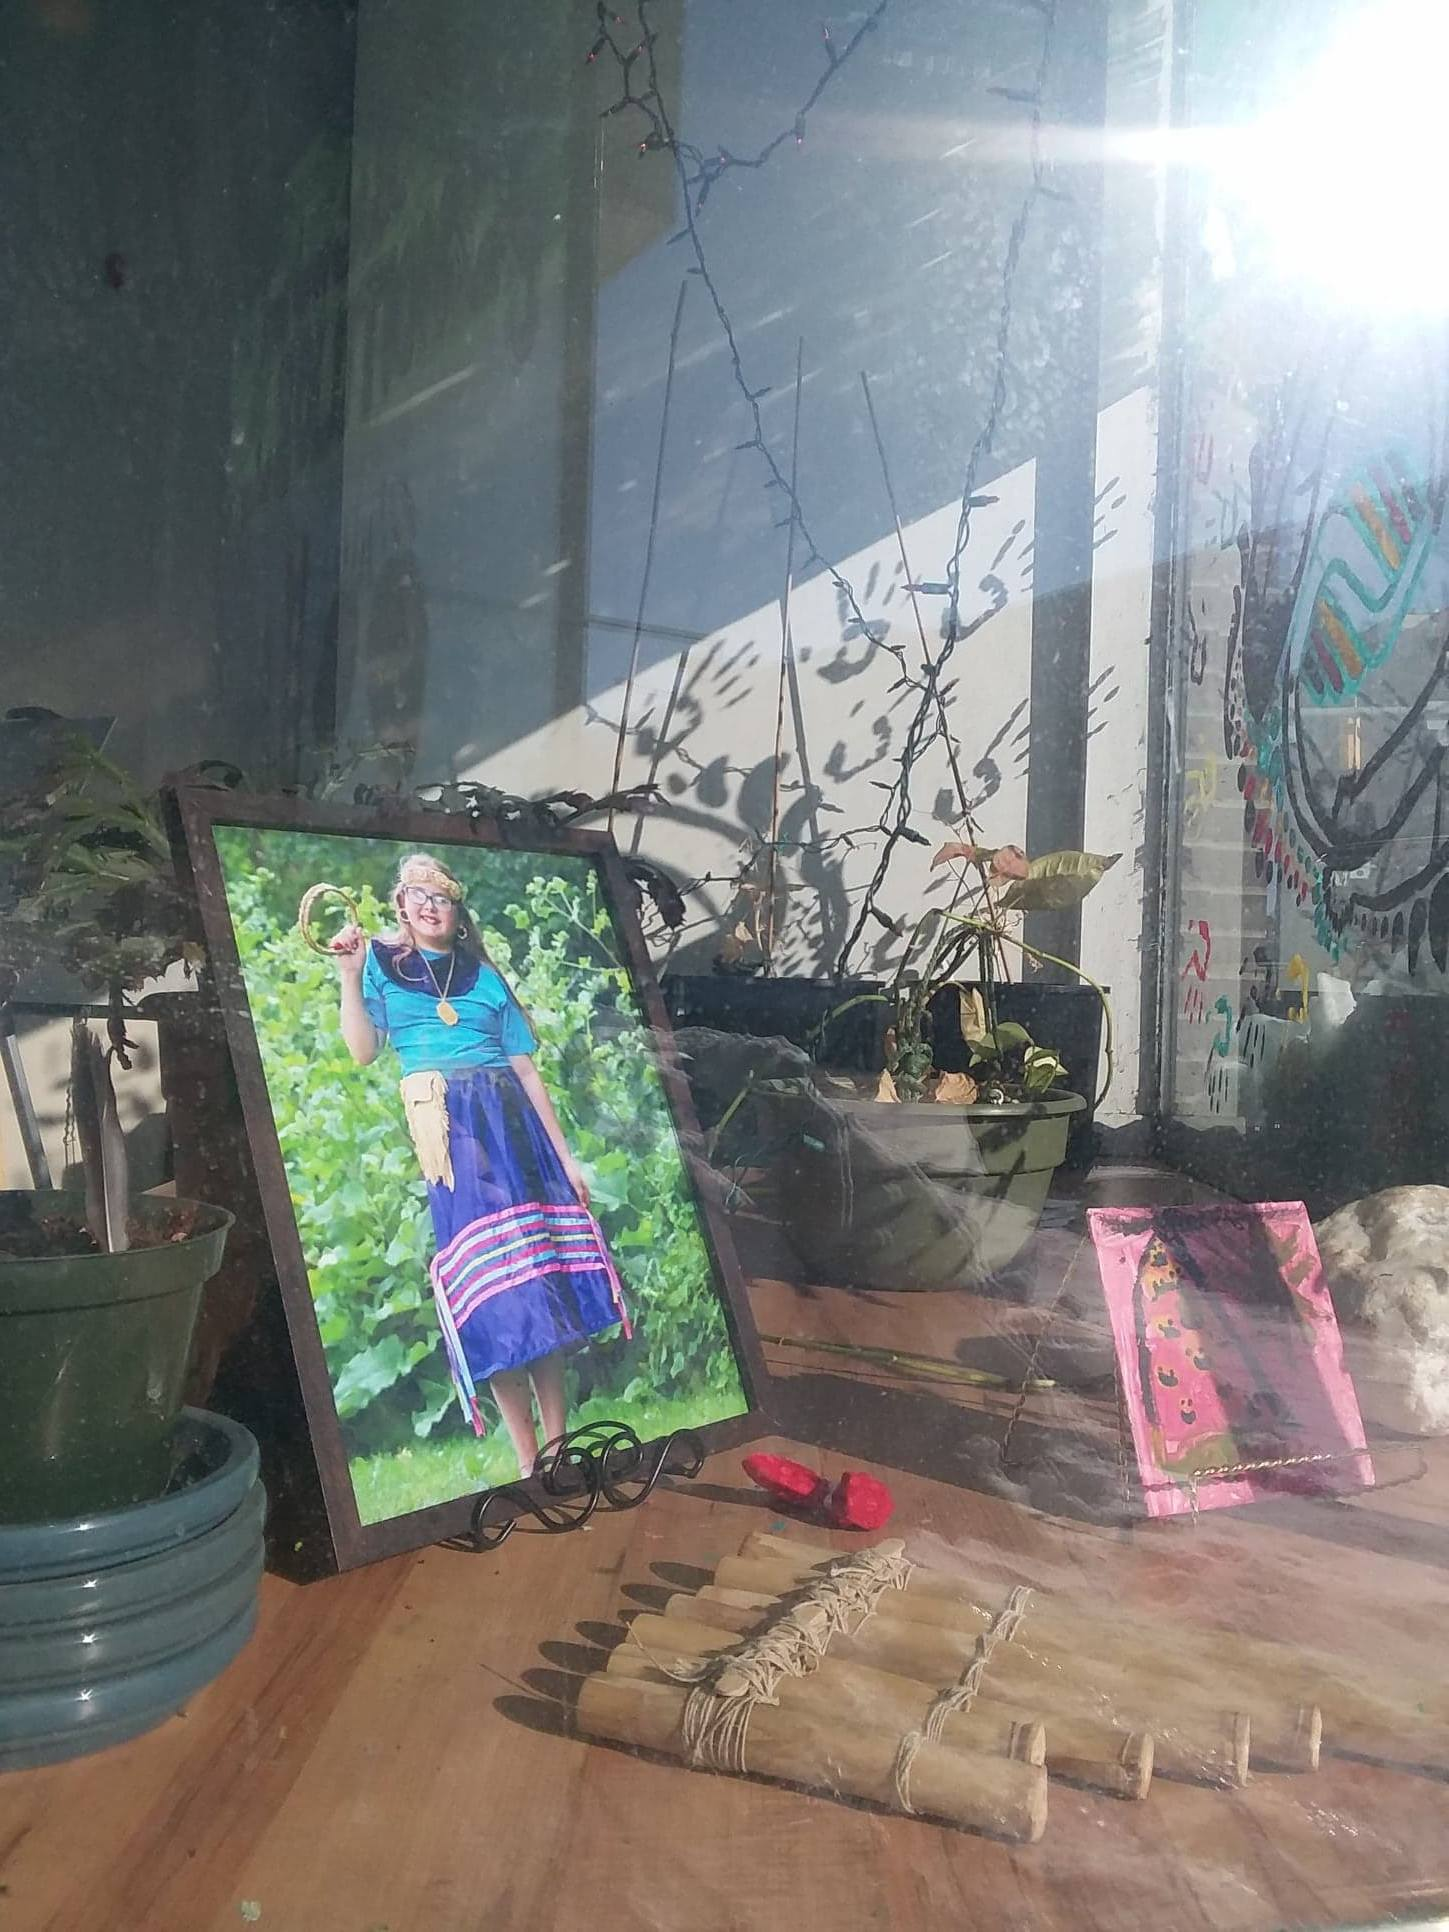 Micmac Community Art Show at HardScrabble Solutions in Maine